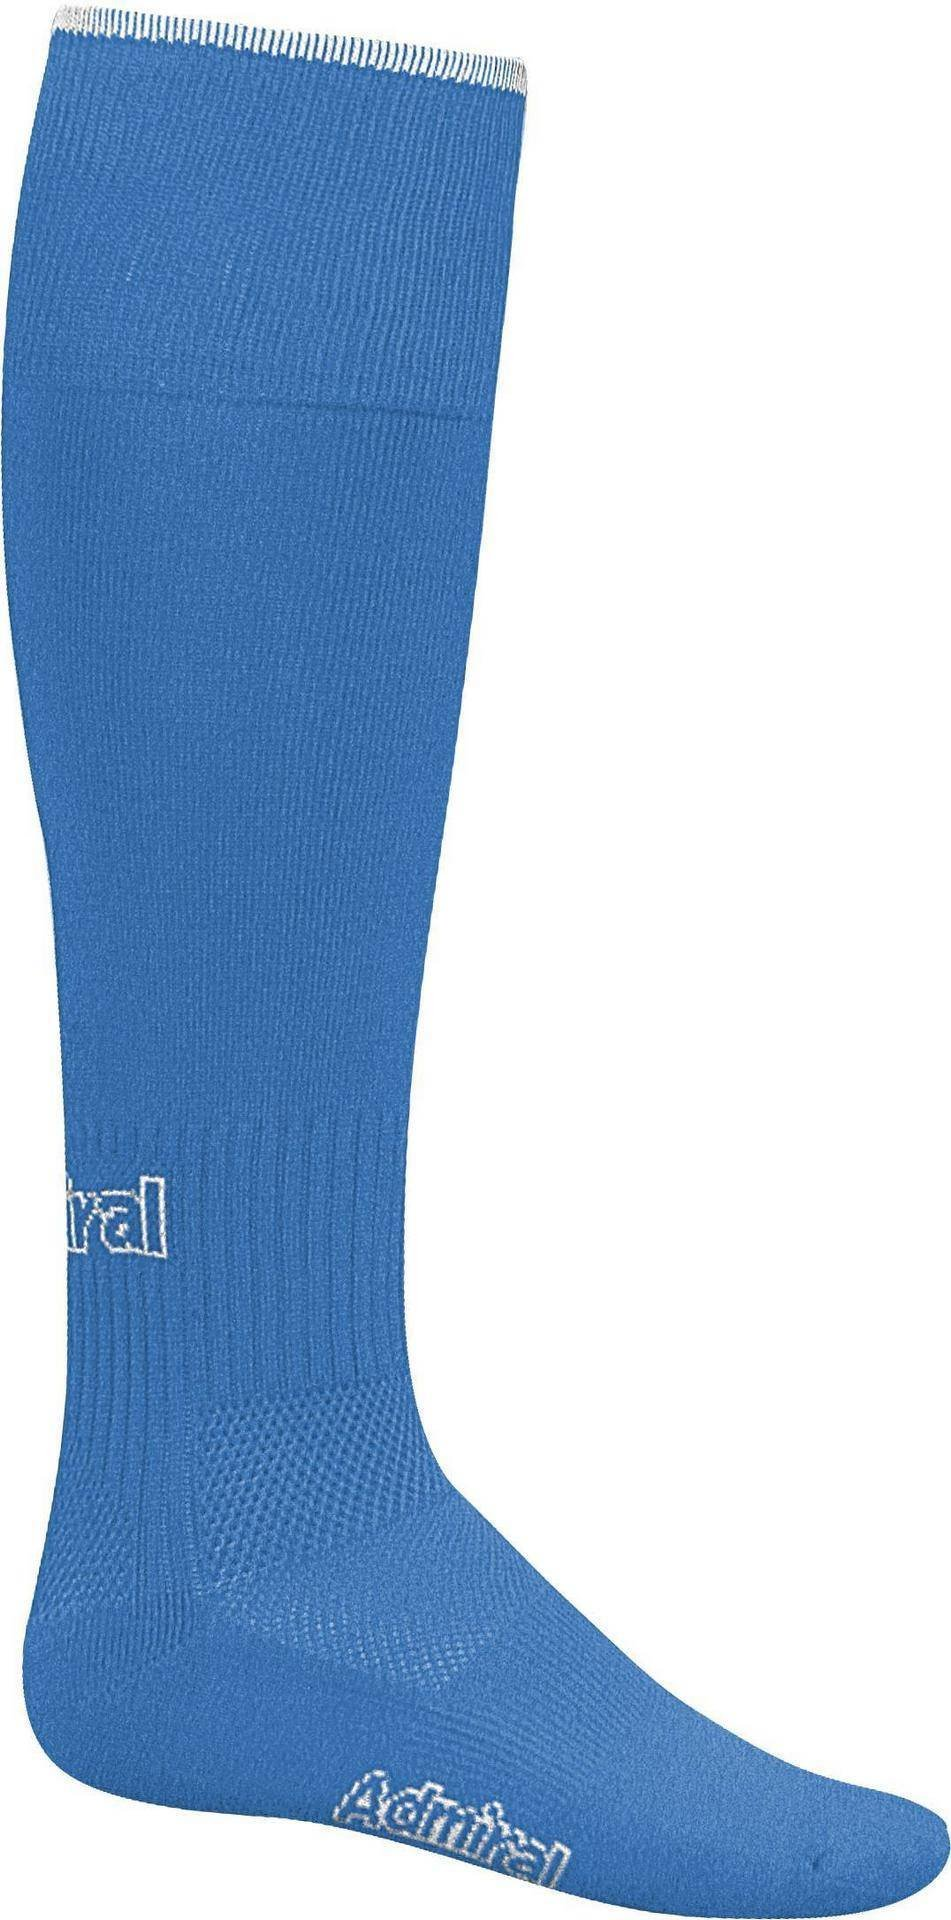 Admiral Professional Soccer Socks, Sky/White, Child by Admiral